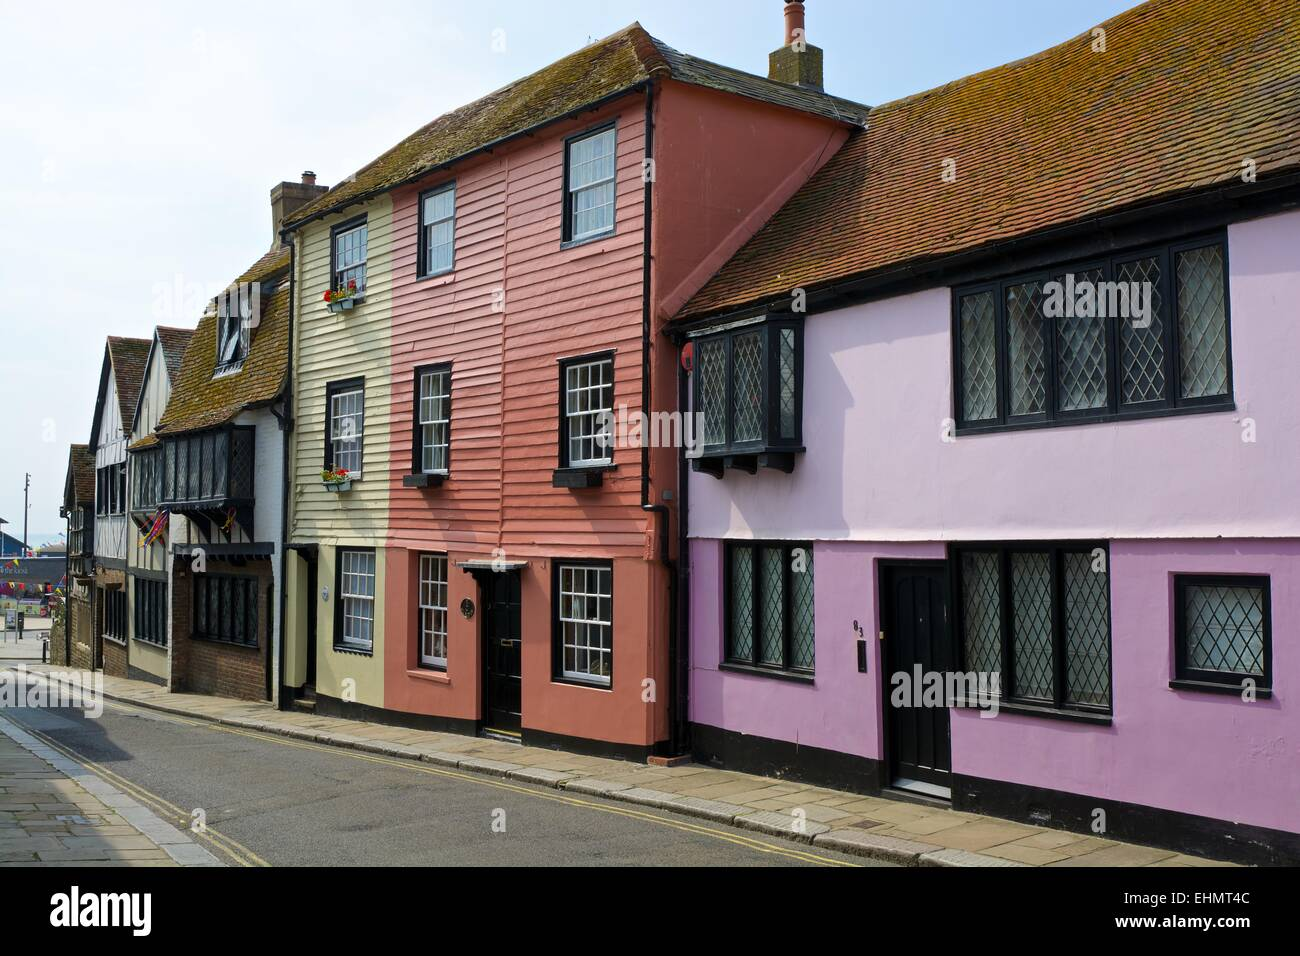 Narrow street in Hastings Old Town. East Sussex. England. With wooden fronted houses and no people - Stock Image